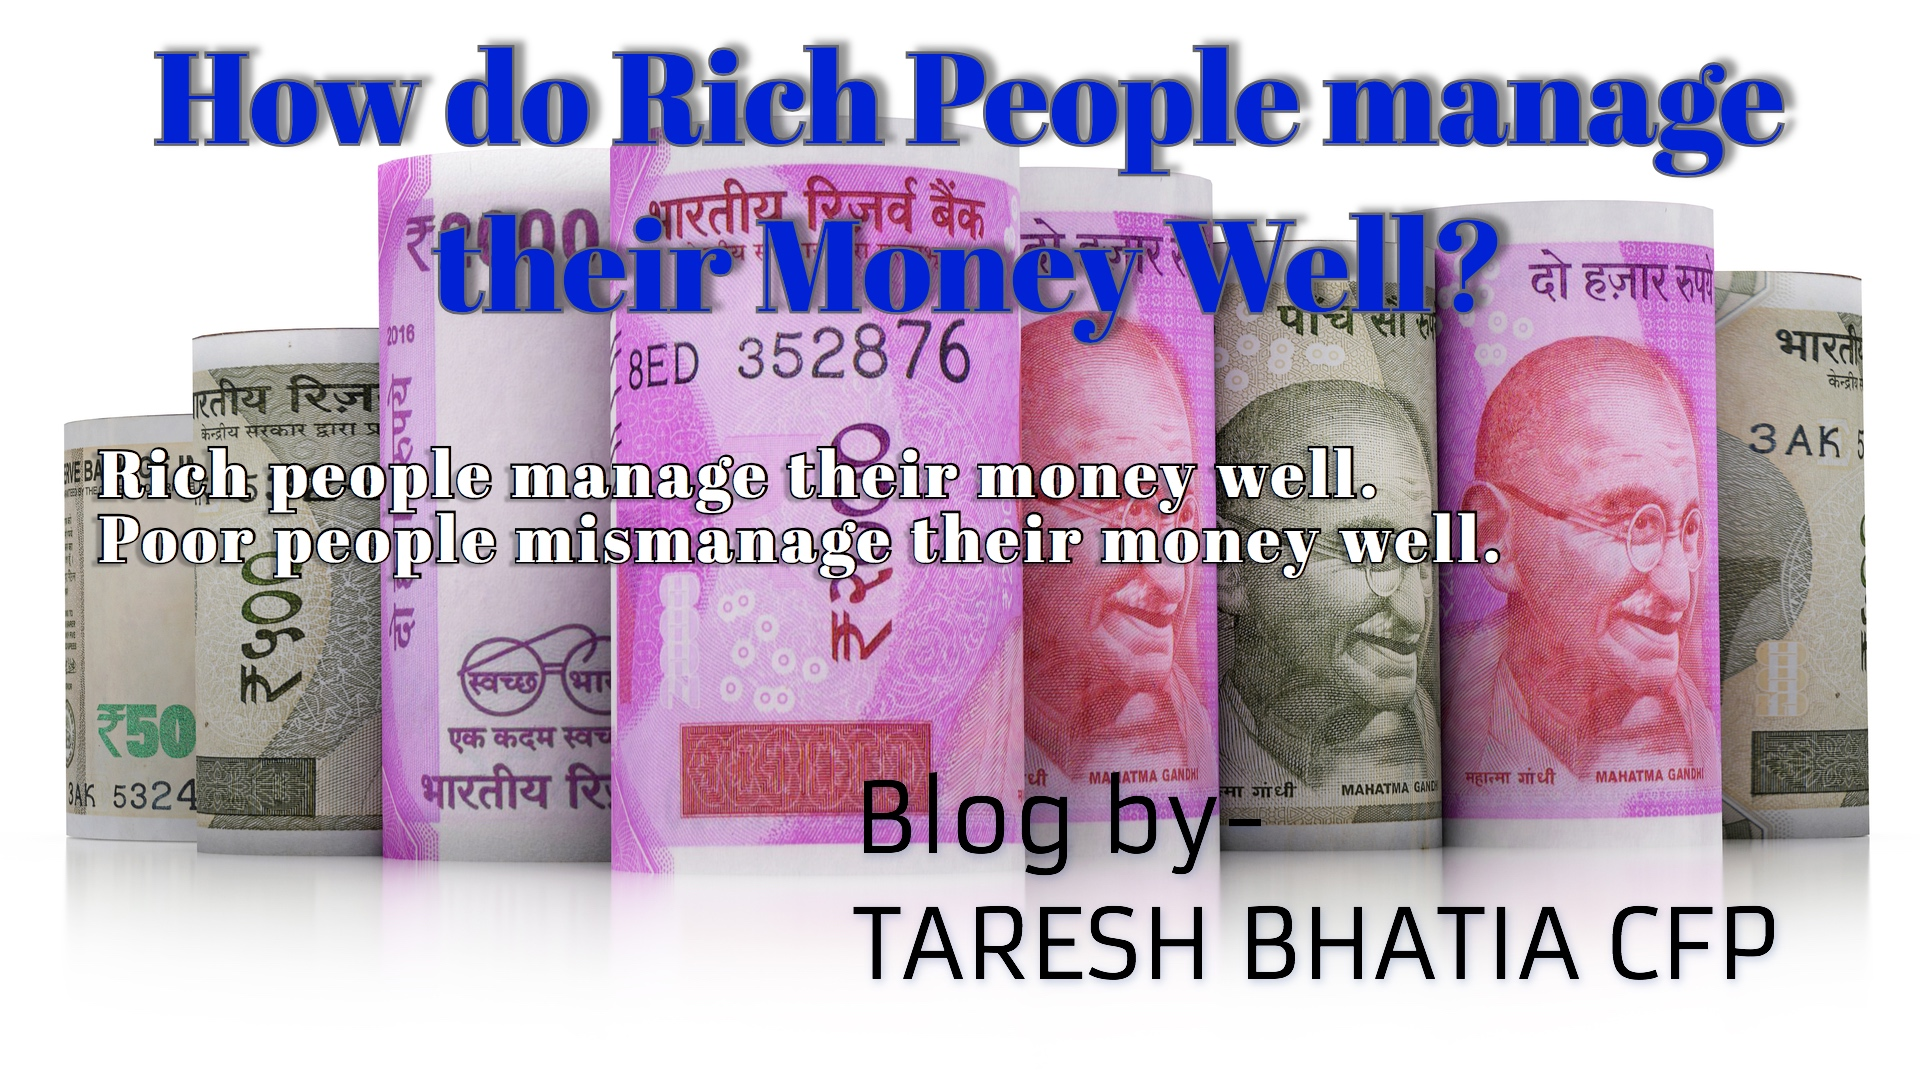 http://blog.advantagefp.in/rich-people-manage-money/